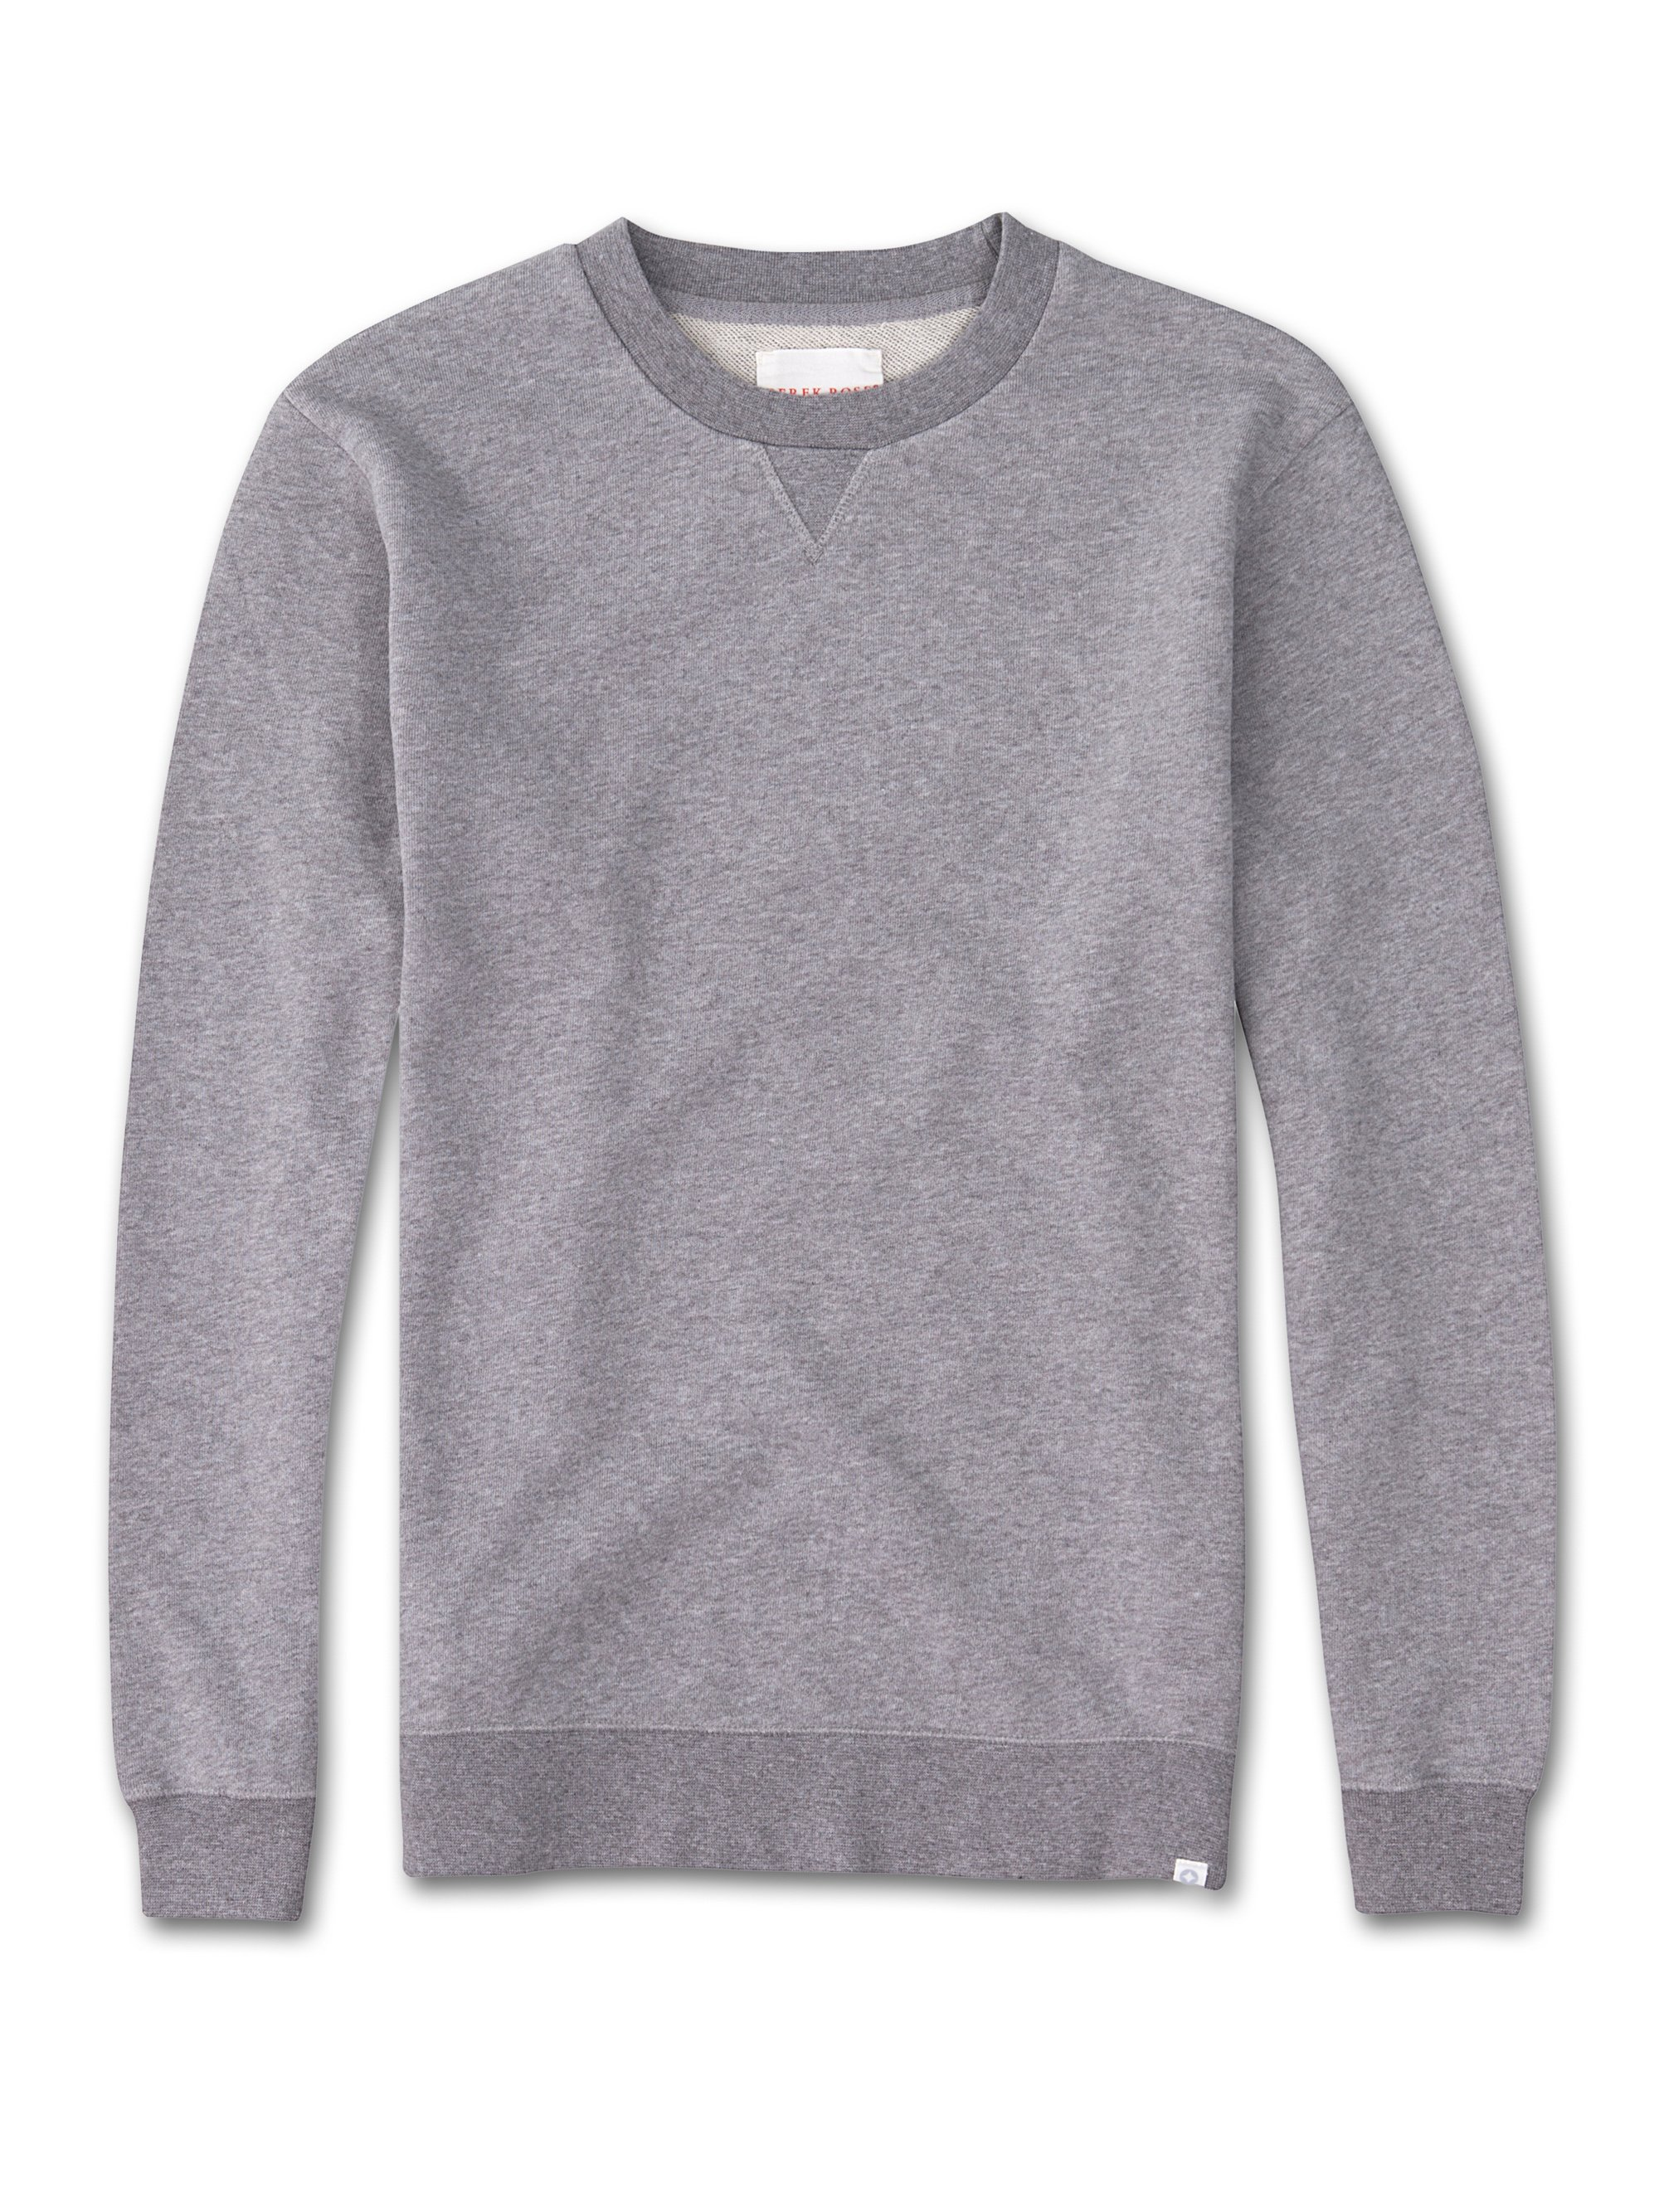 Men's Sweatshirt Devon Loopback Cotton Silver